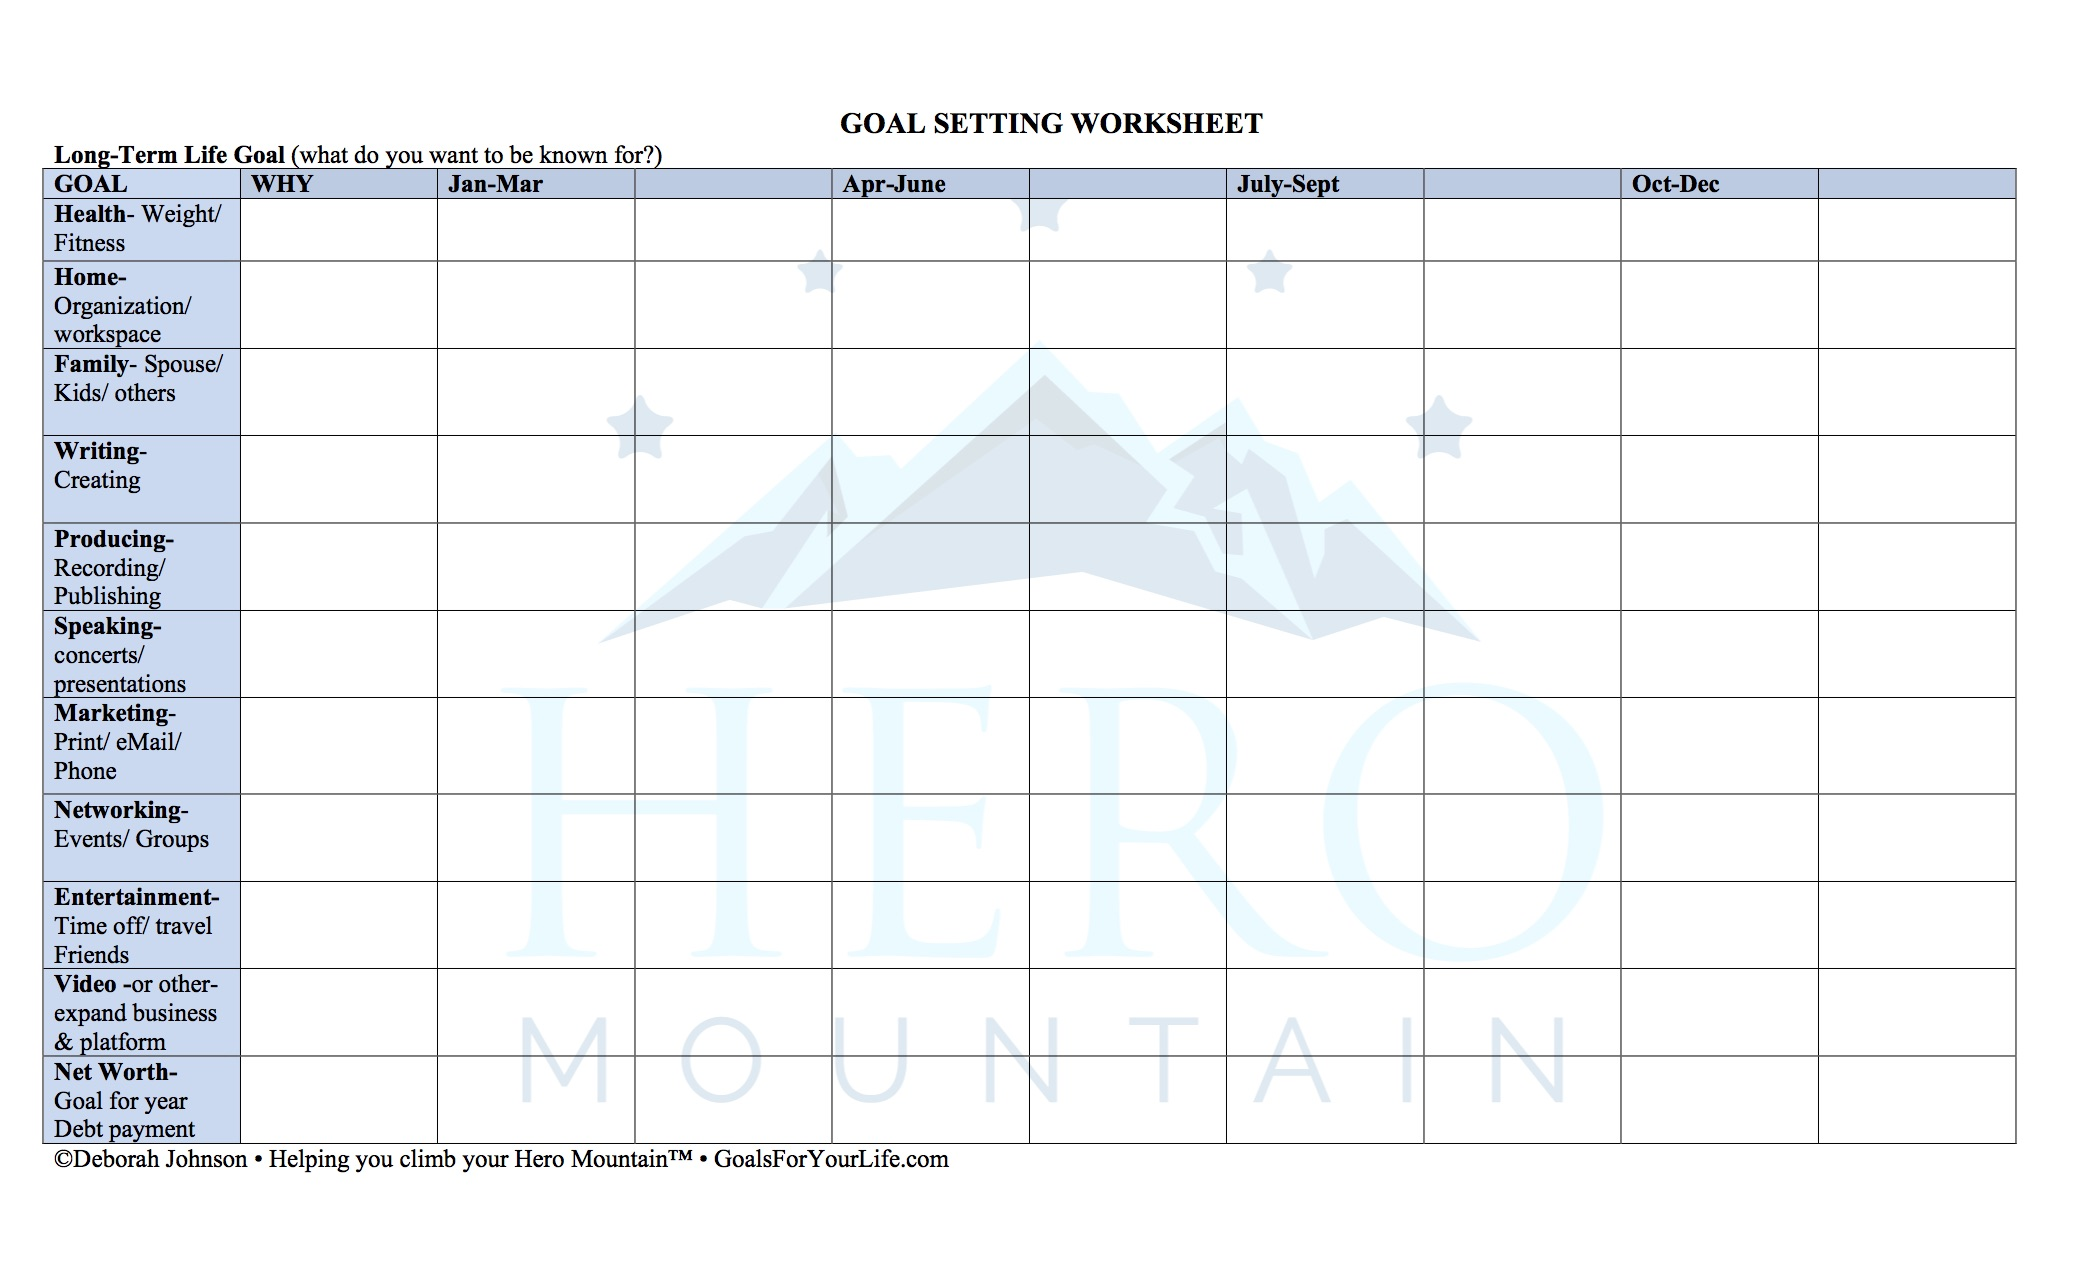 Goal Setting Worksheet-Goals for Your life-Deborah Johnson